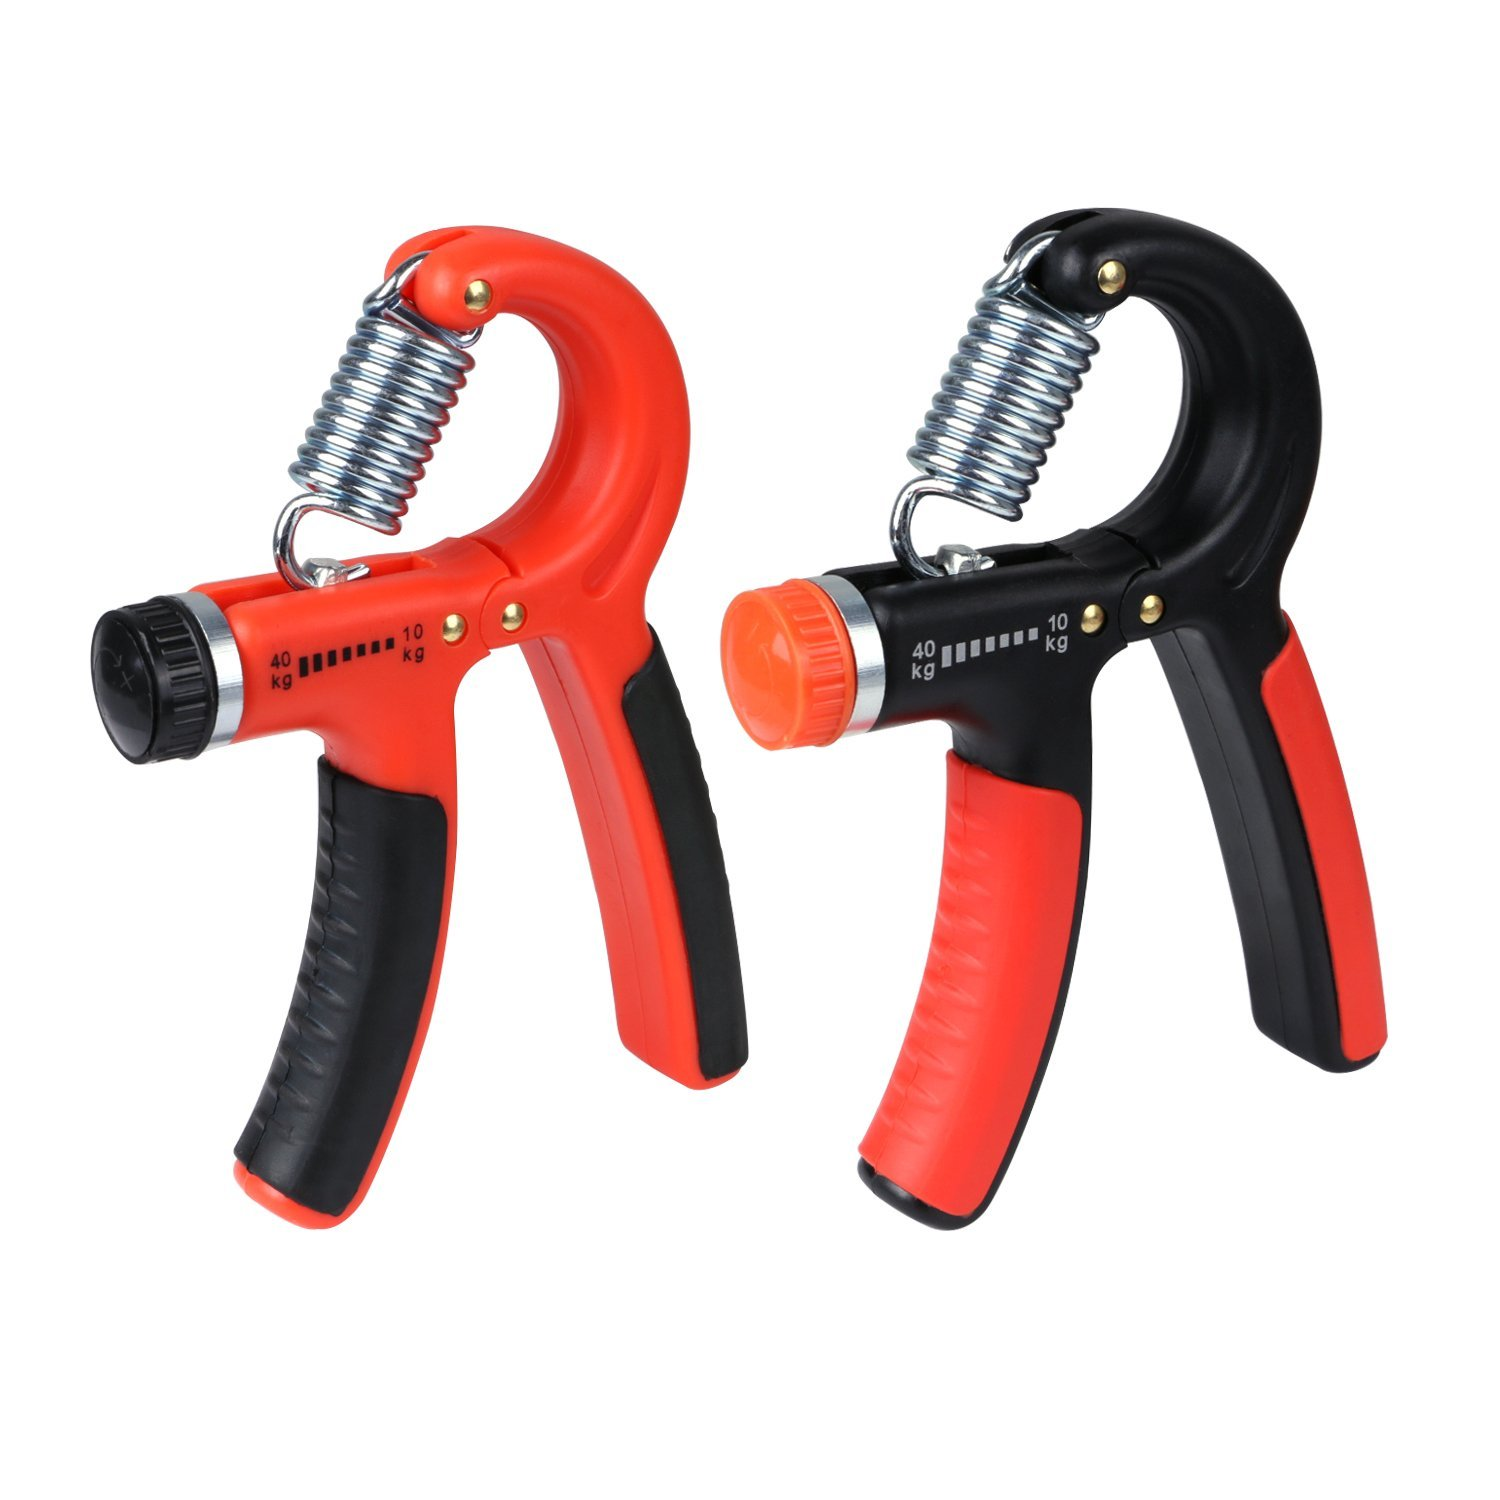 Hand Grip Strengthener, Golo Premium Adjustable Resistance 22-88 Lbs Arm Strength Trainer with Non-slip Gripper for Athletes Pianists Kids Free Exerciser(2 PACK)